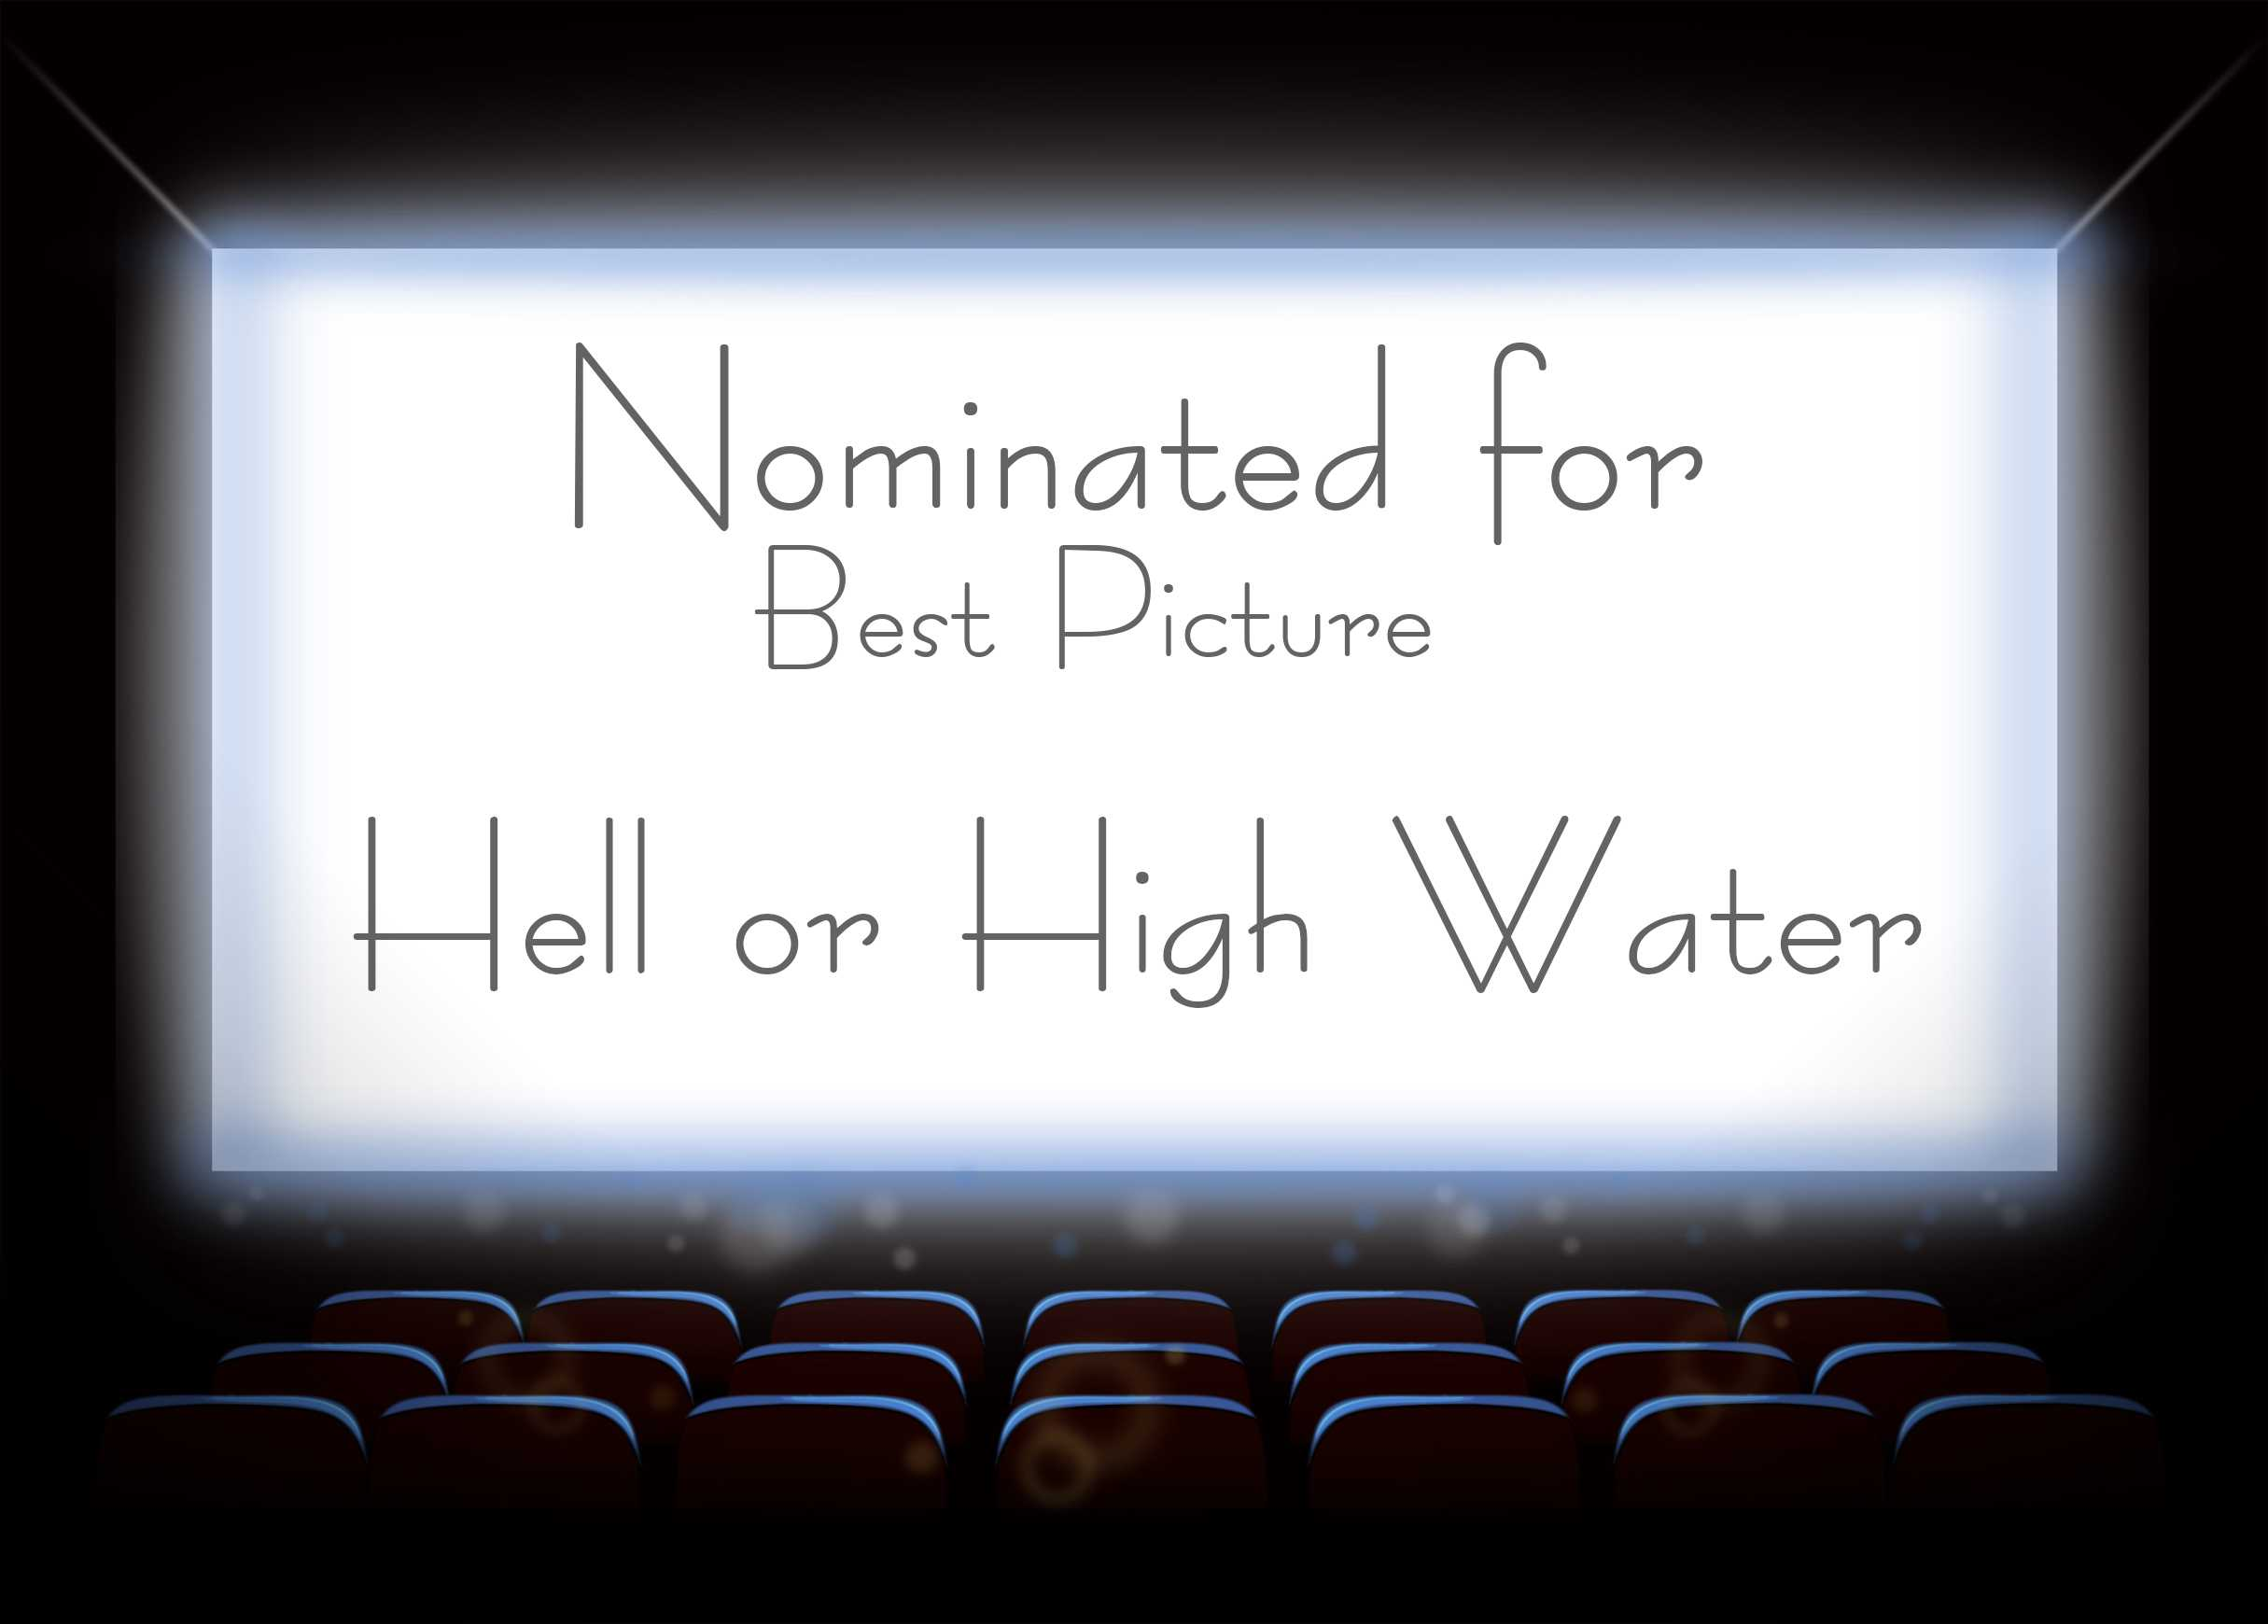 Hell or High Water hit theaters in August. Check out the trailer on Youtube.